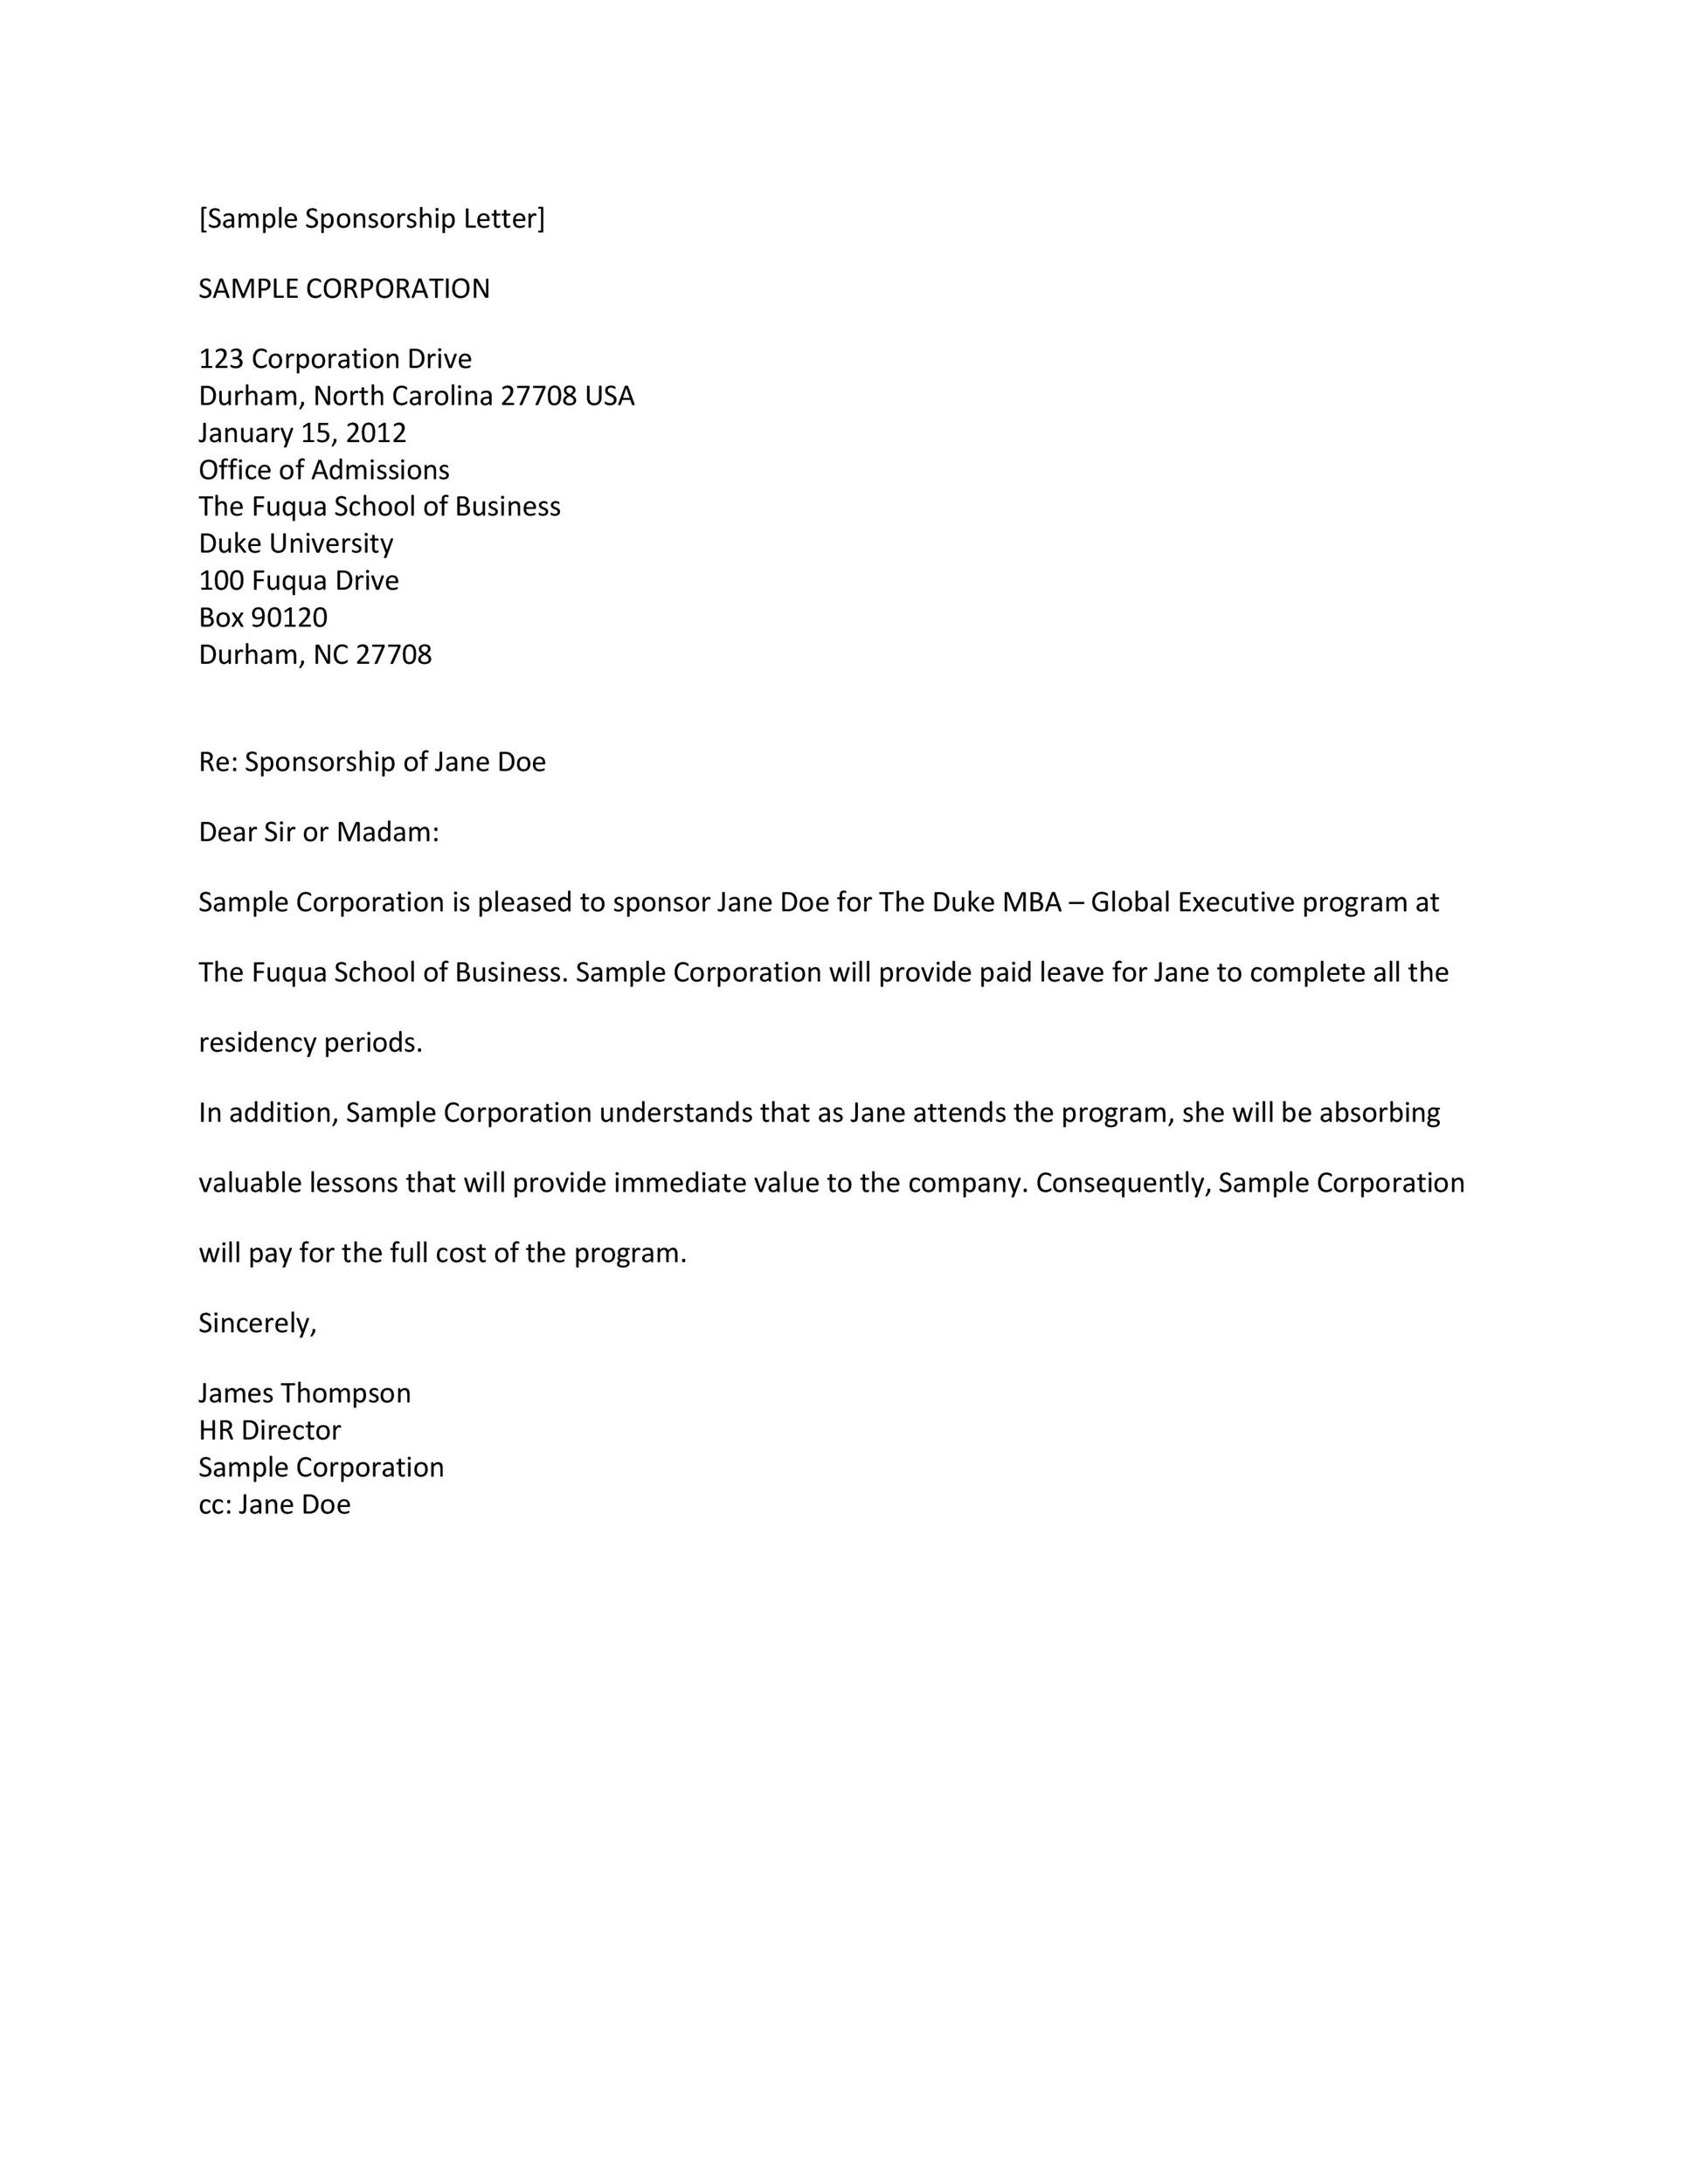 Human Resources Manager Cover Letter Human Resource Cover Letter